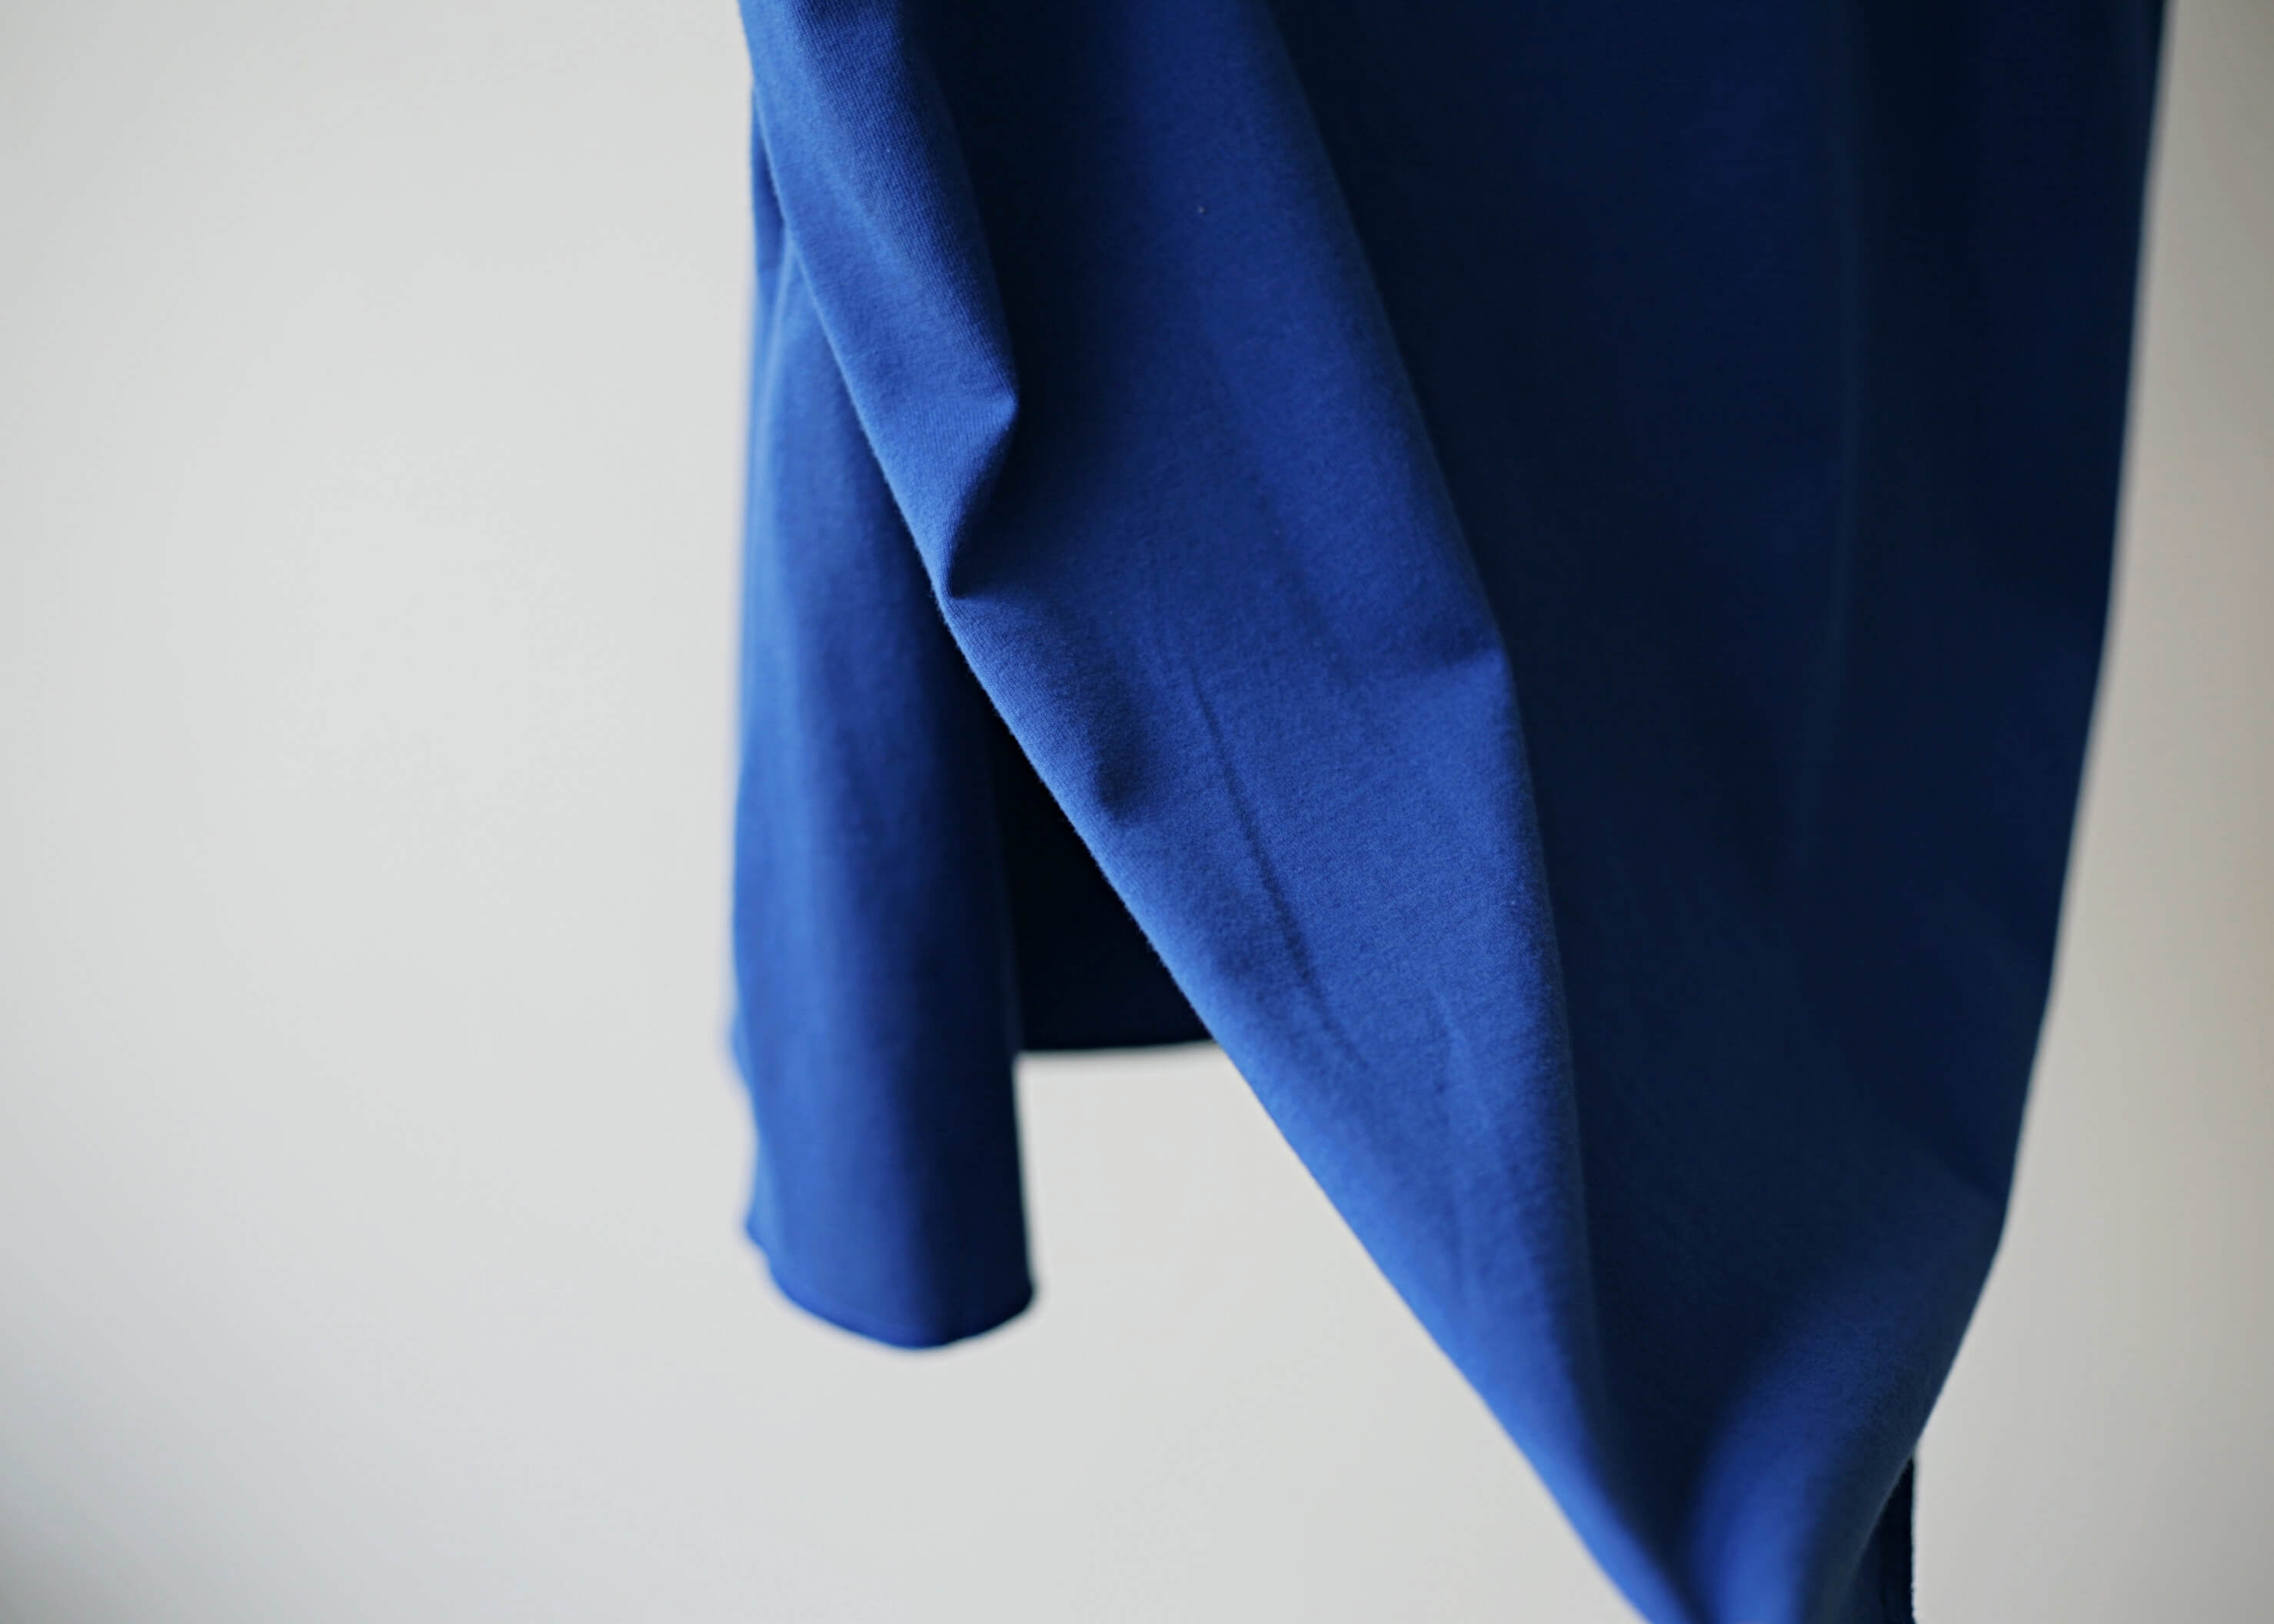 thee apron s/s blueの後ろ部分のアップ